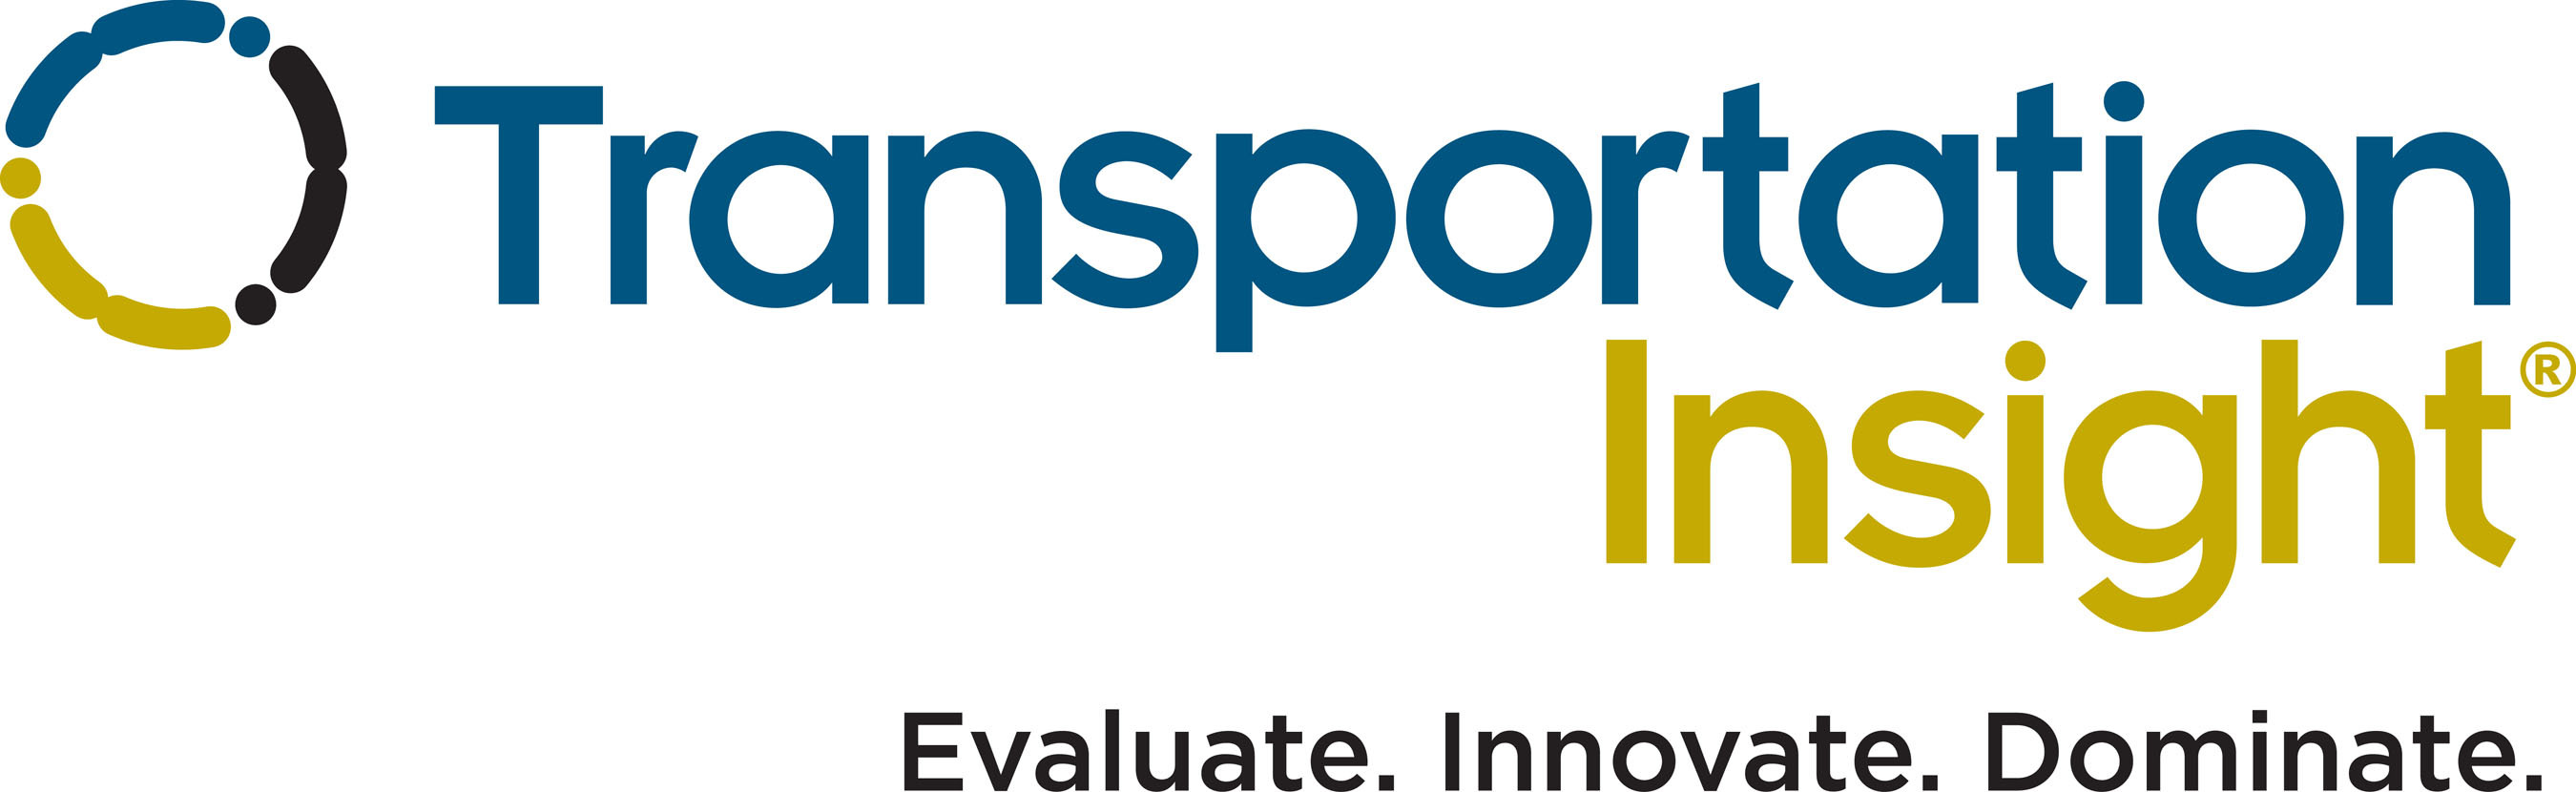 Transportation Insight: Evaluate. Innovate. Dominate.